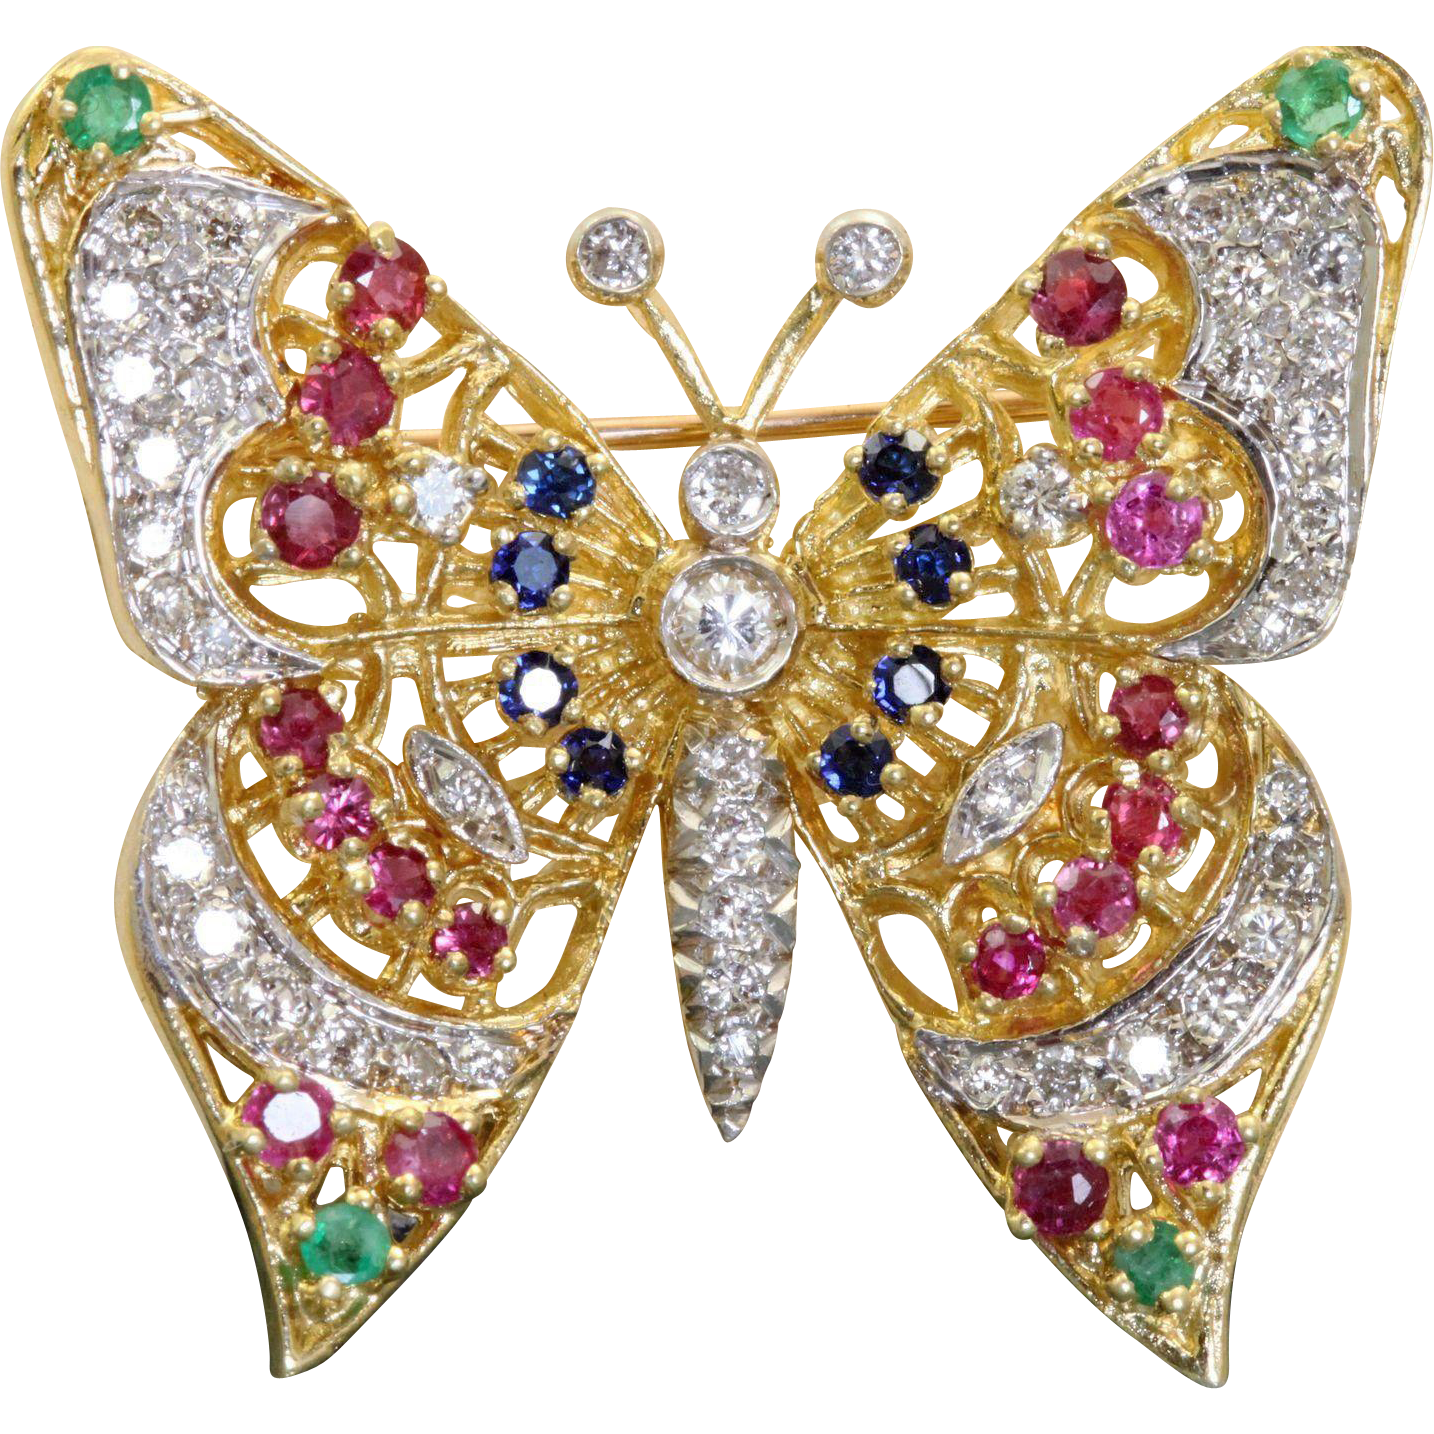 motif products jewelers white diamond glr regent ring karat gold butterfly main